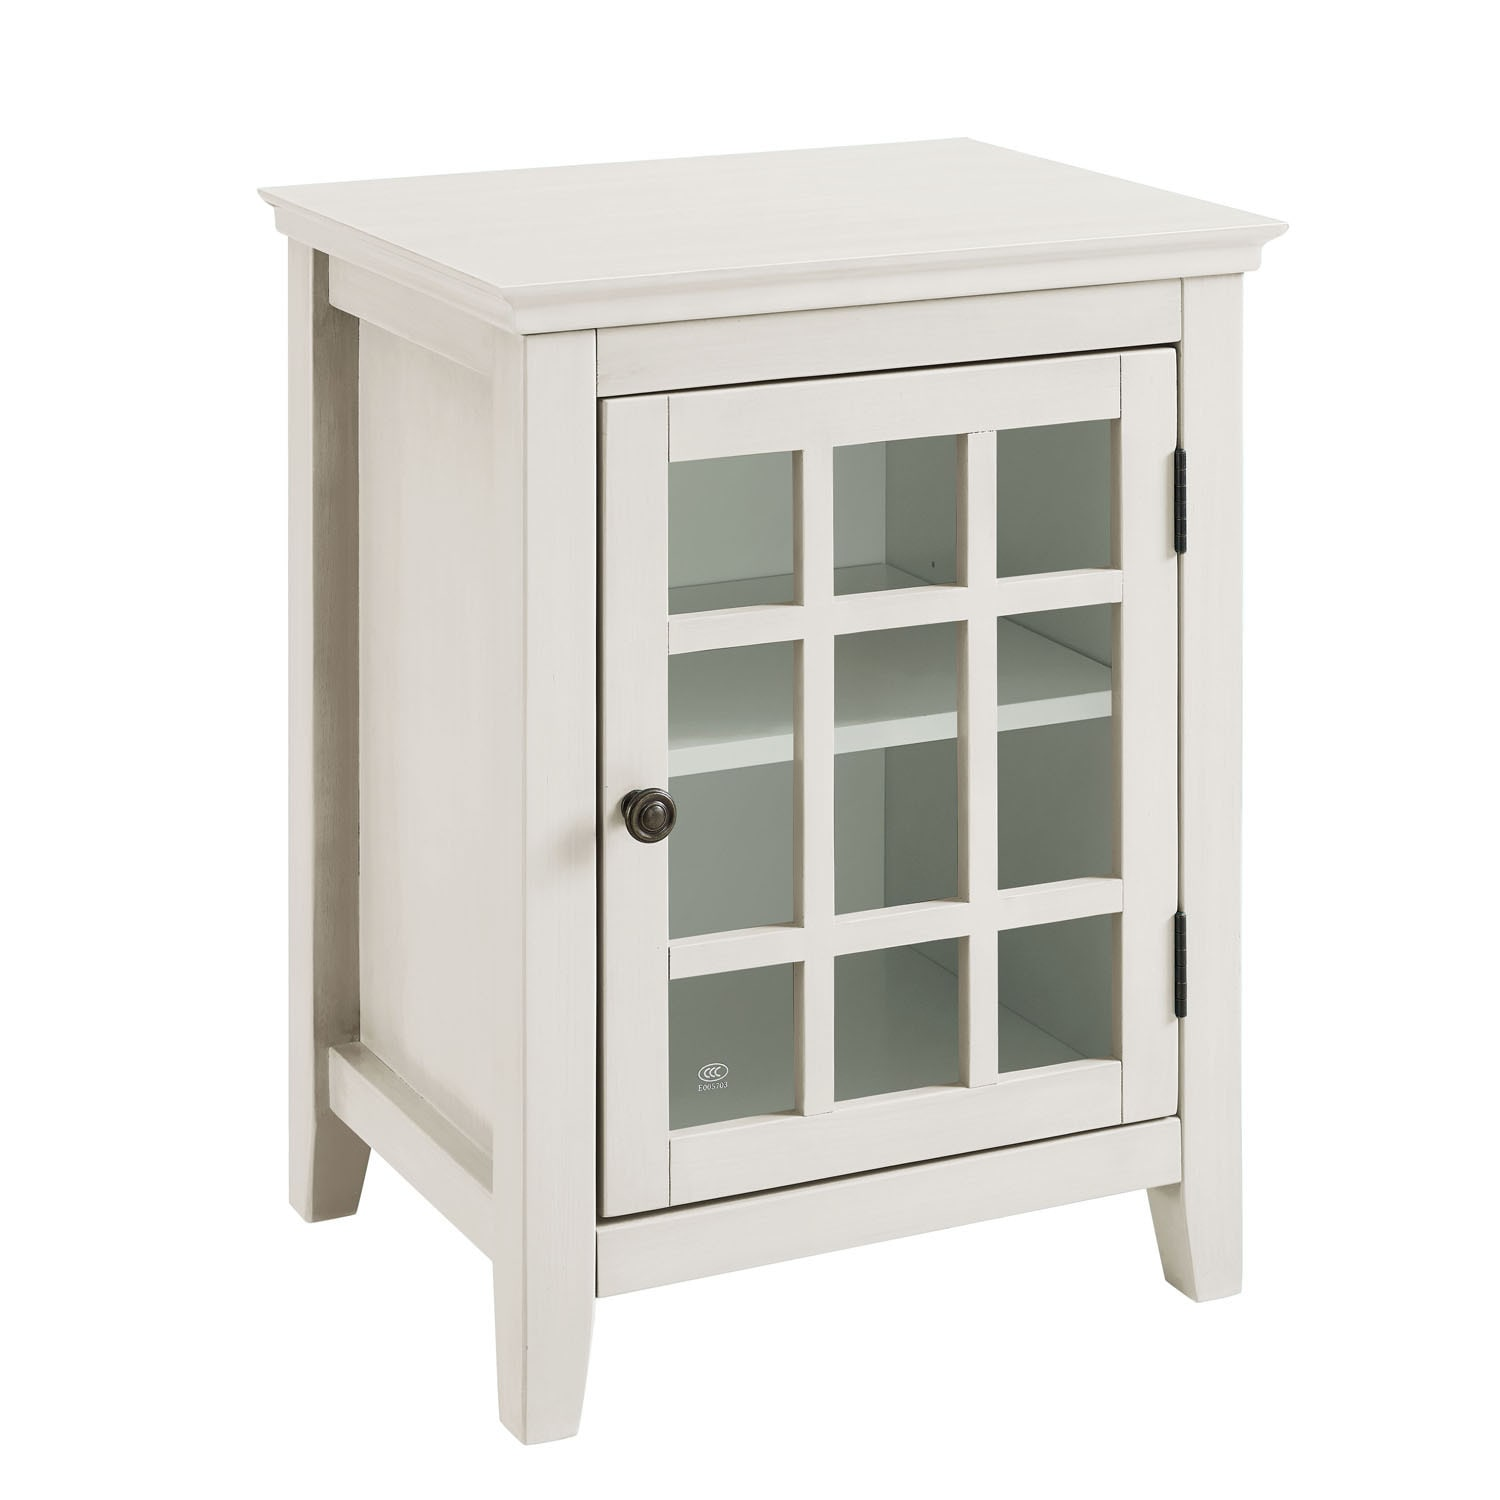 linon galway accent table white cordless battery operated lamps target vanity antique oak end tables mercer dining bar cabinet bath and beyond instant pot pier chairs small metal